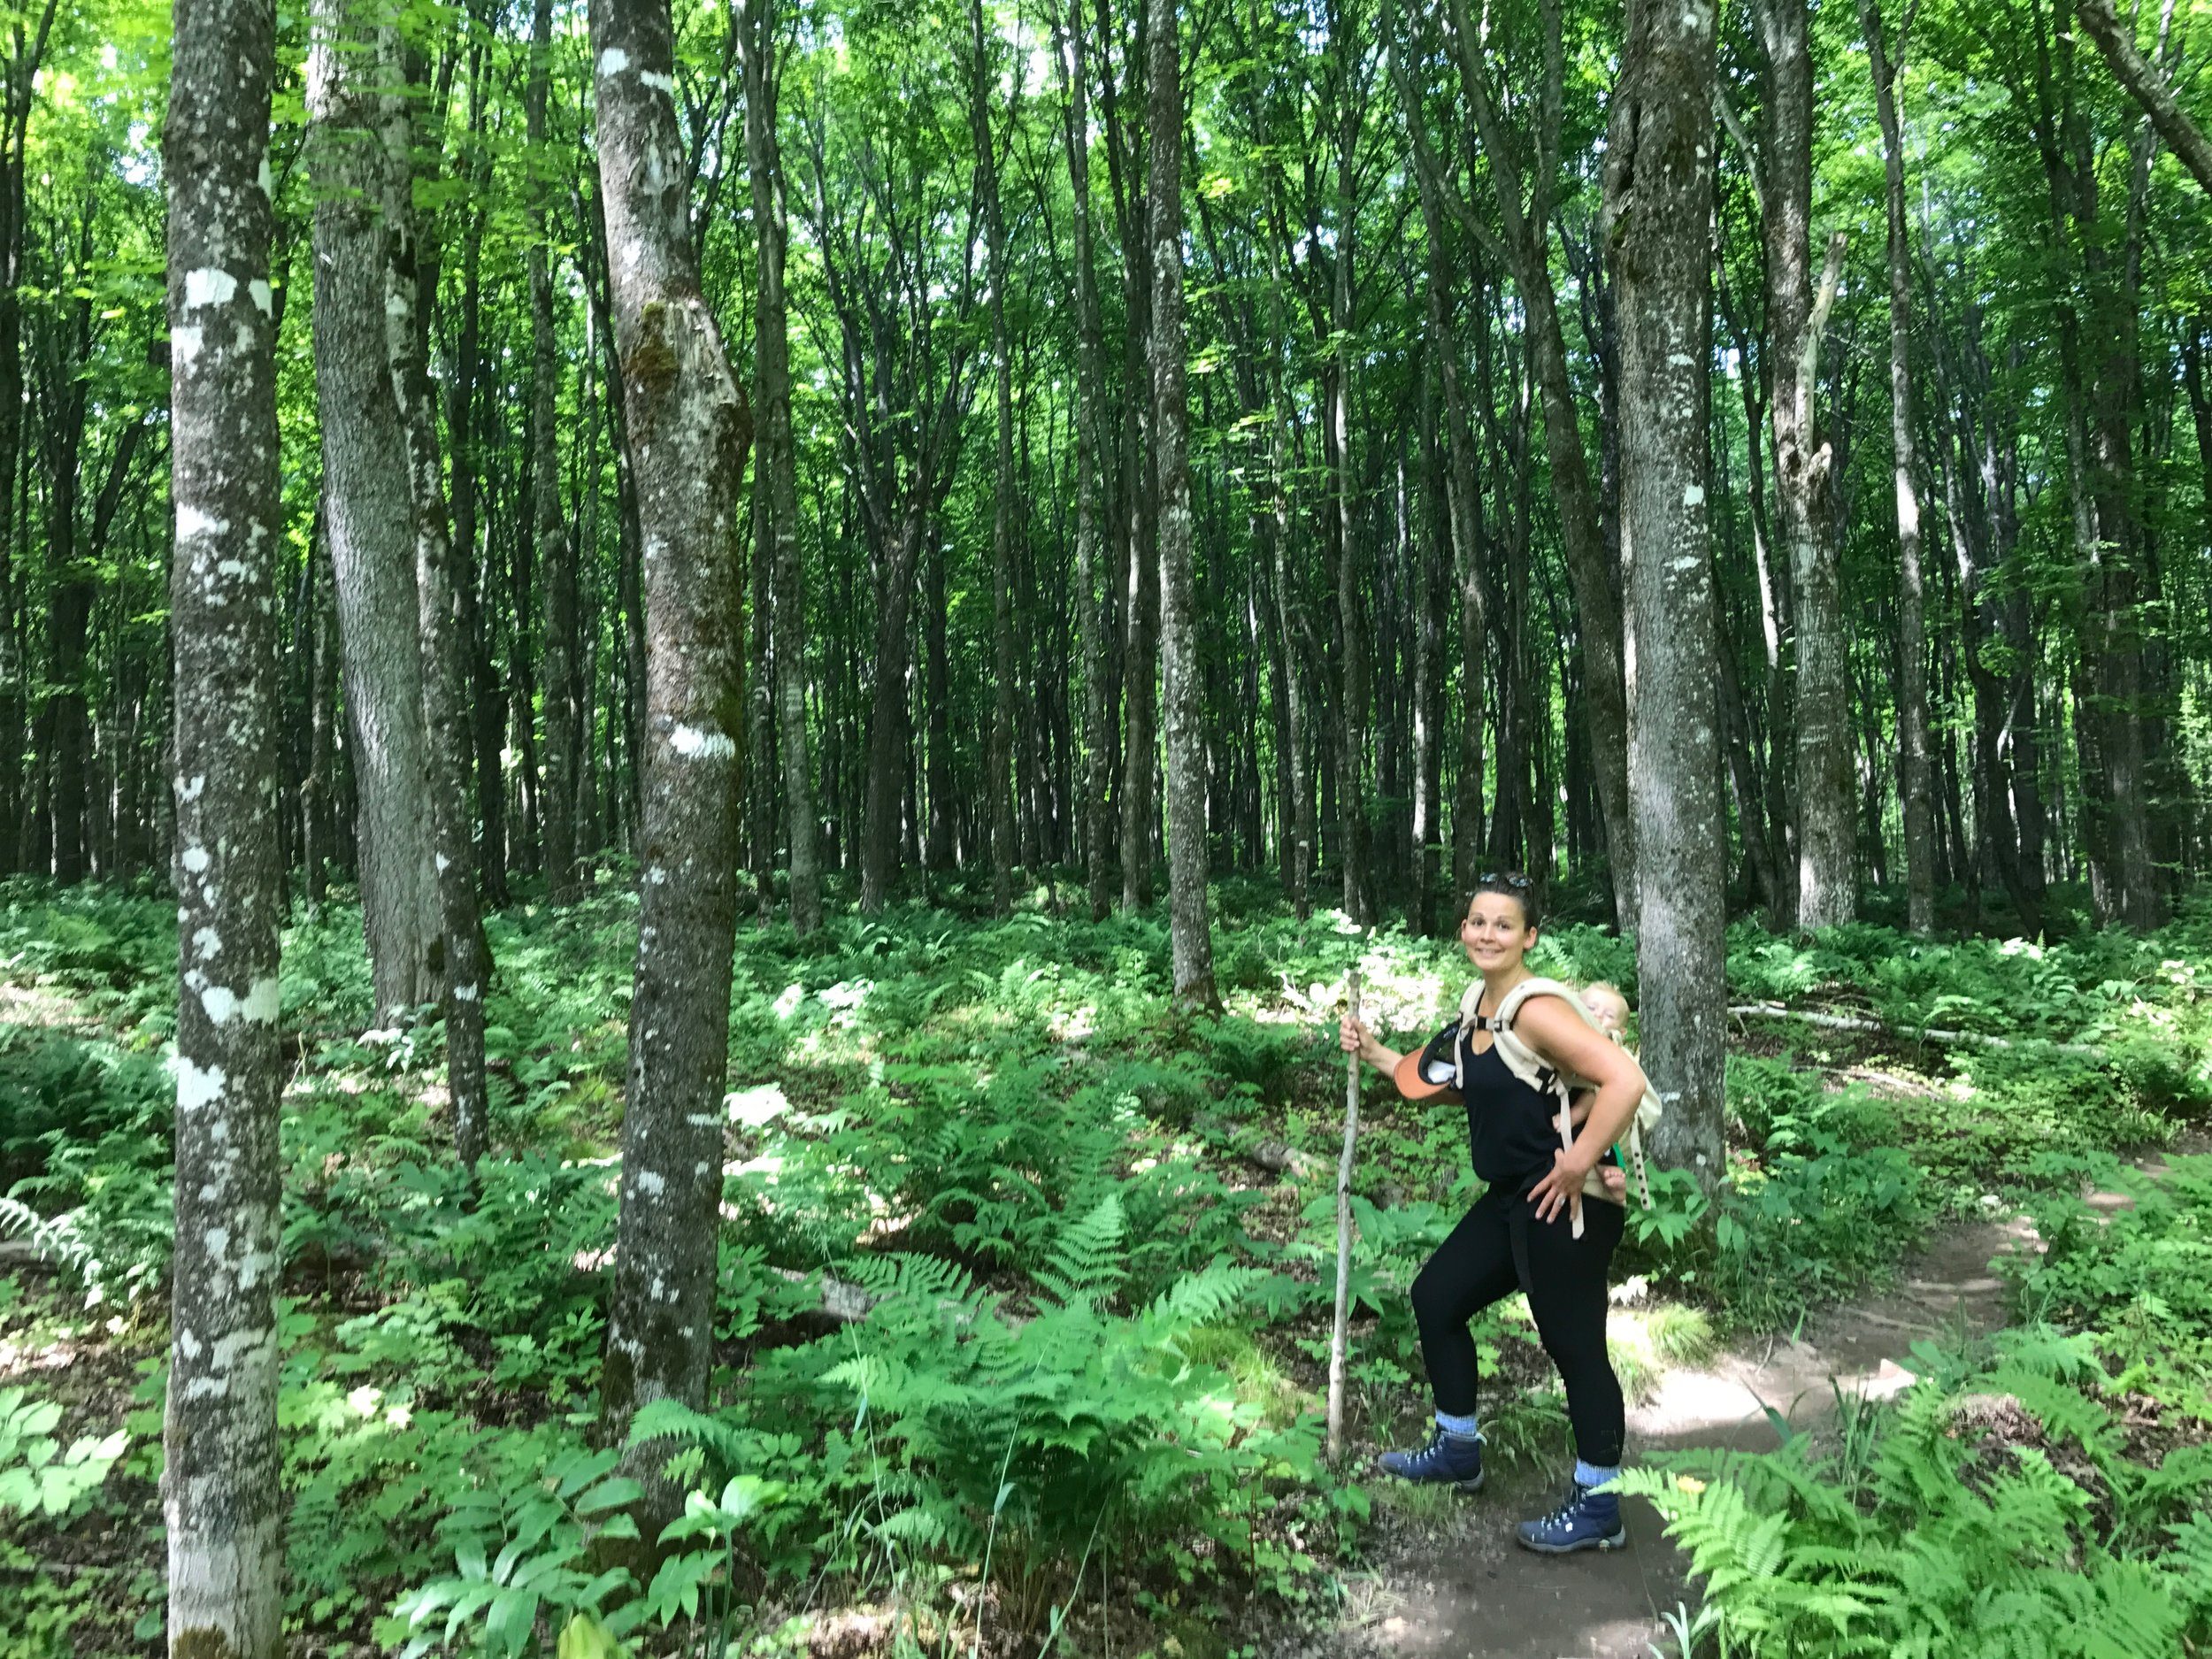 Hiking in the UP to the beaches of Lake Superior. - July 2017 - Yoopee, Michigan